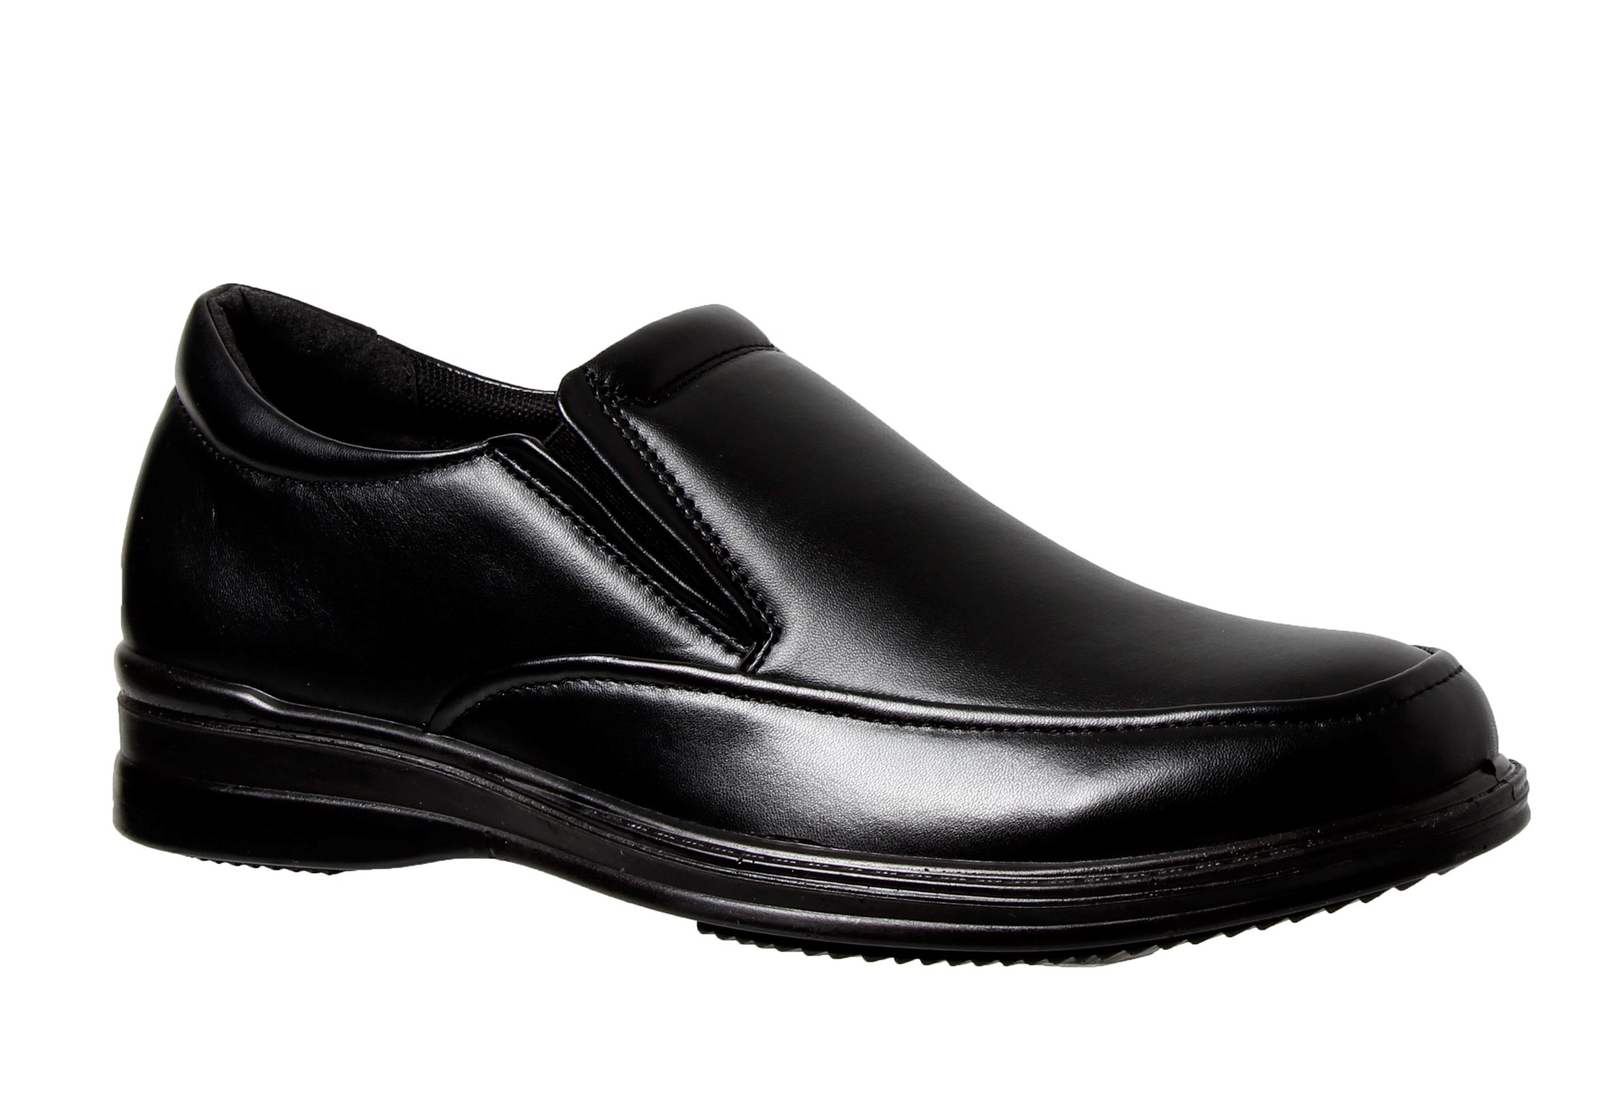 Mens Grosby Becker Black Slip On Work Dress Formal Comfortable Lightweight shoes